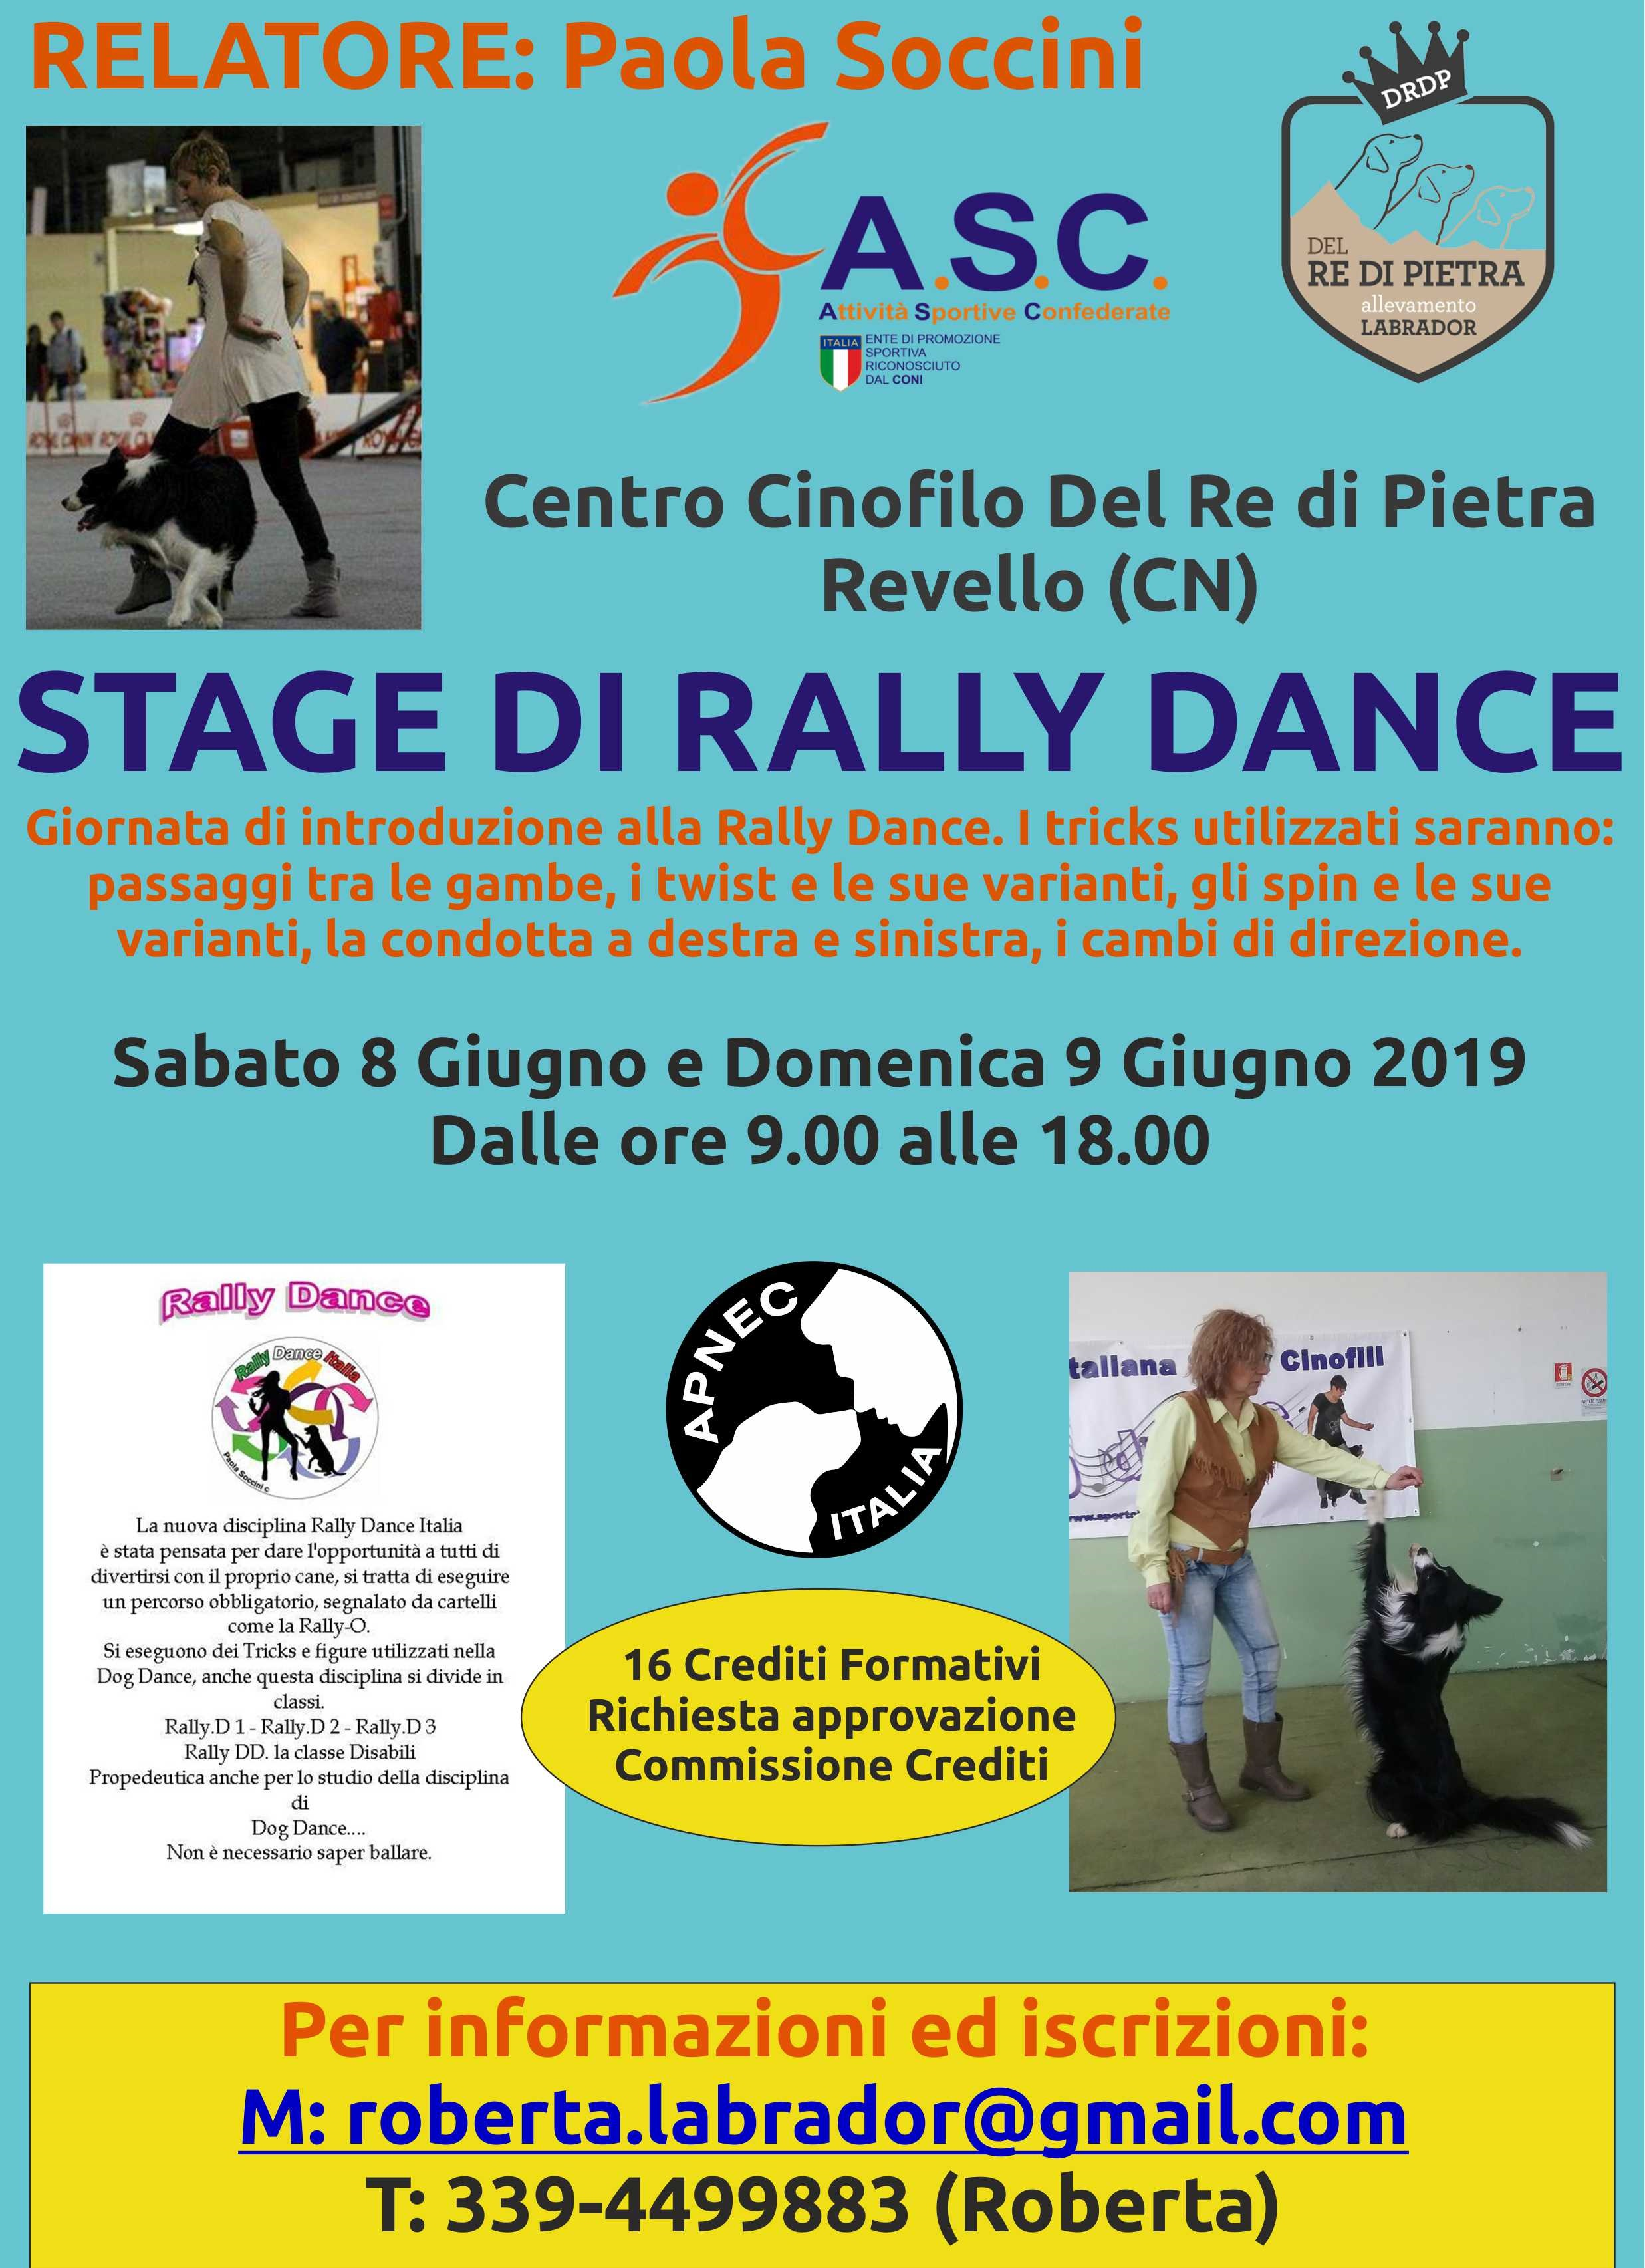 STAGE DI RALLY DANCE